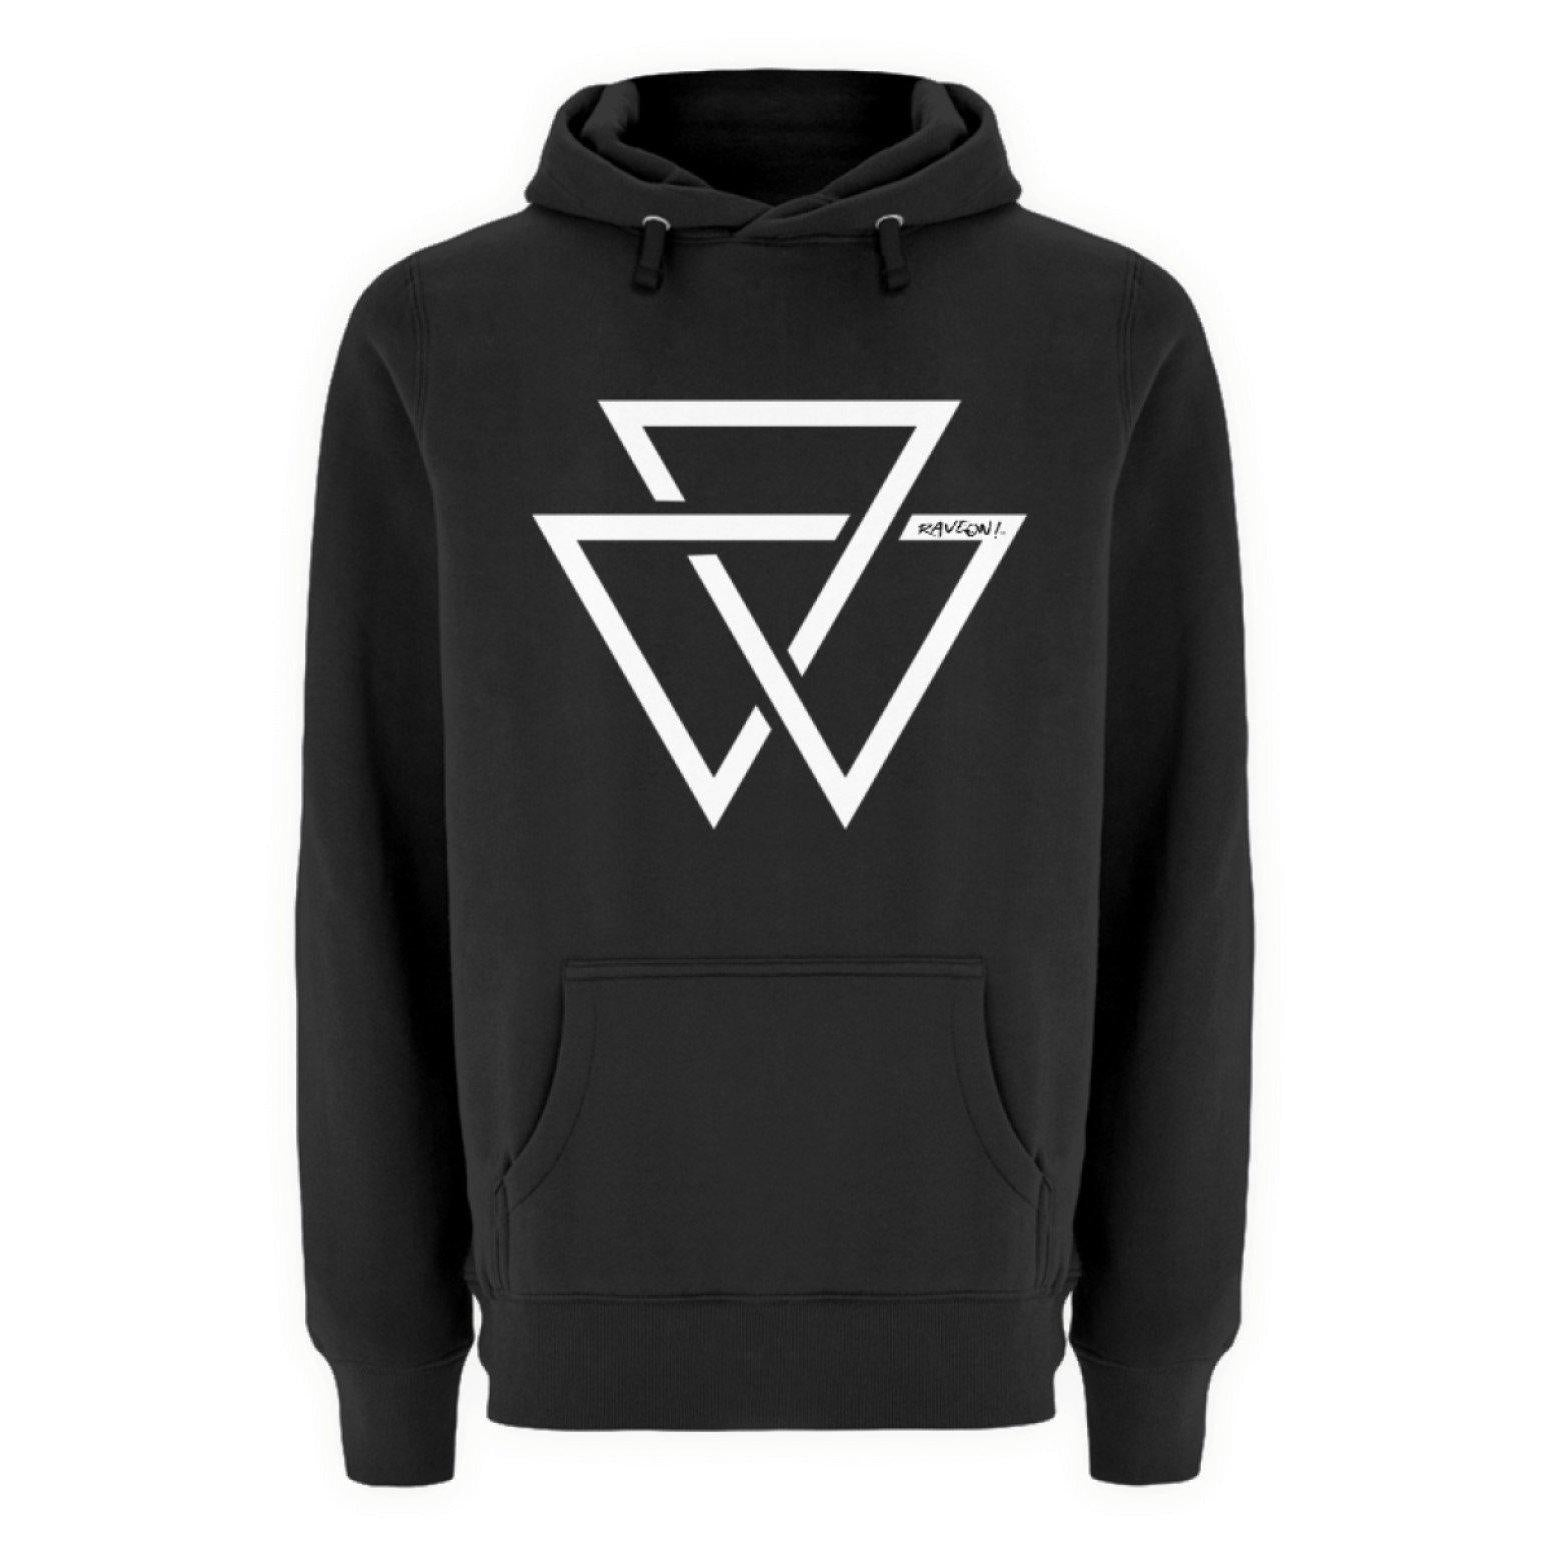 TRIANGLE RAVE ON!® - Unisex Premium Kapuzenpullover Unisex Premium Hoodie Black / S - Rave On!® der Club & Techno Szene Shop für Coole Junge Mode Streetwear Style & Fashion Outfits + Sexy Festival 420 Stuff